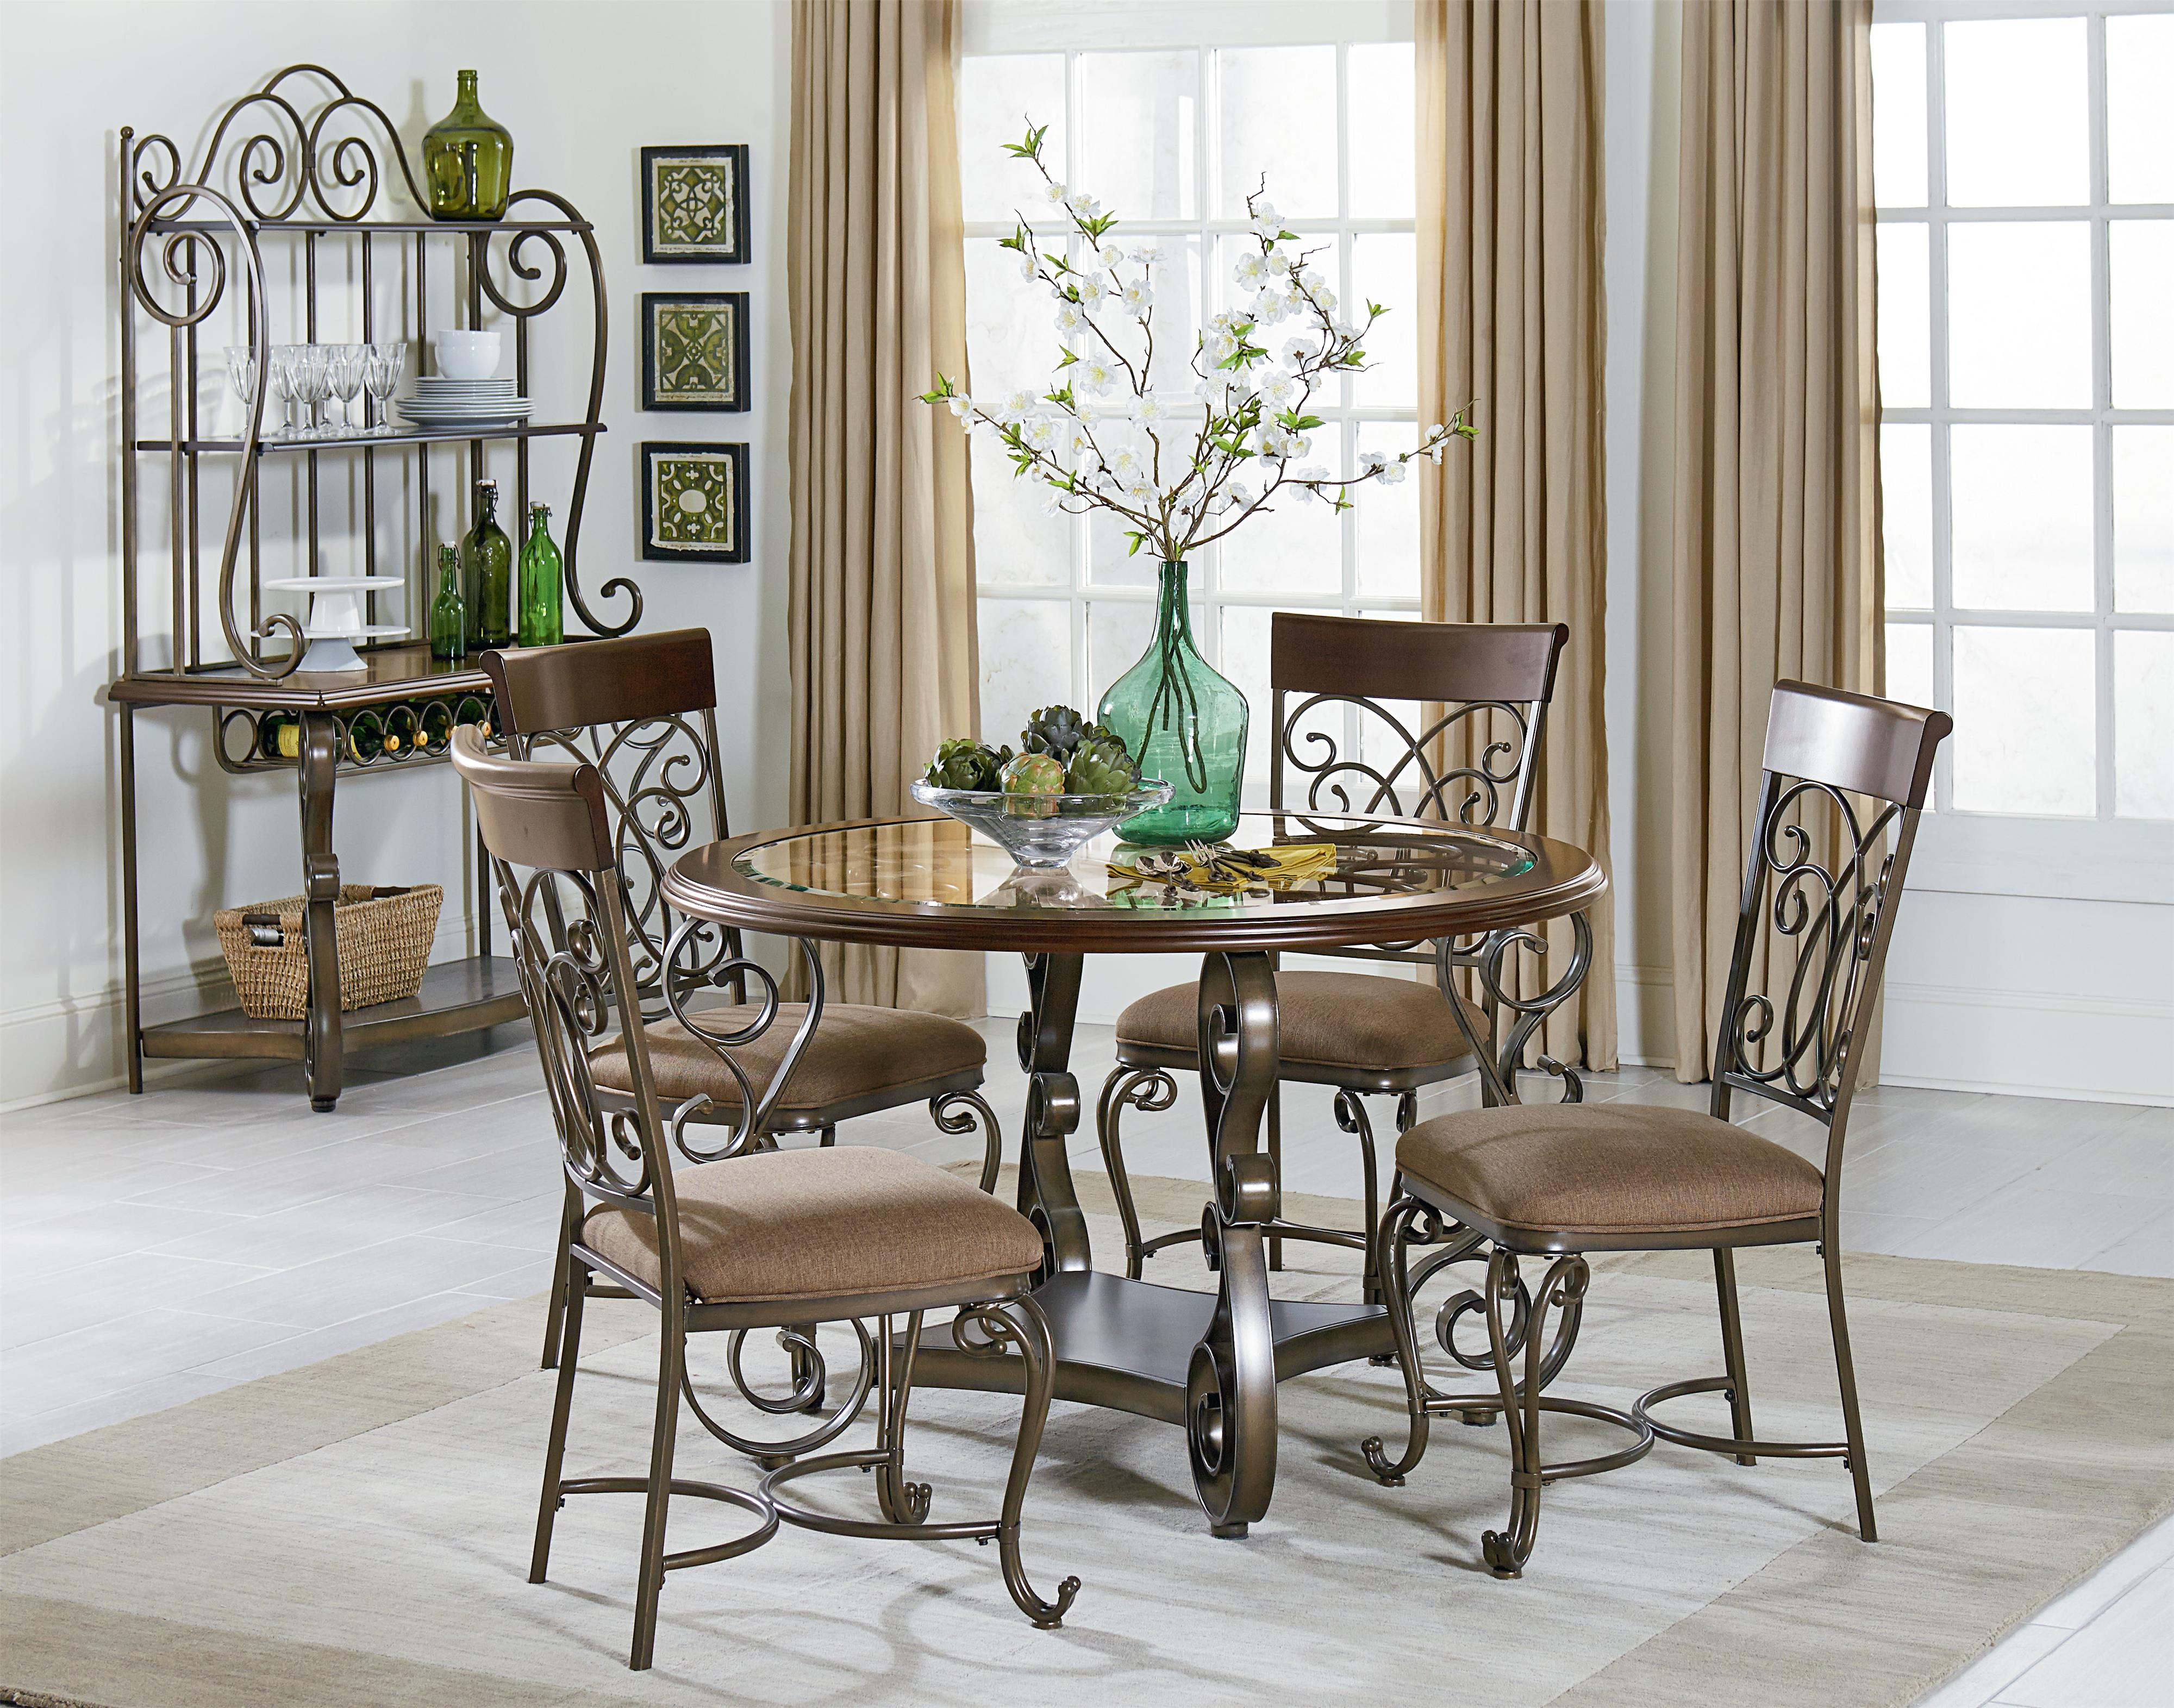 Standard Furniture Bombay Casual Dining Room Group - Item Number: 13420 Casual Dining Group 1